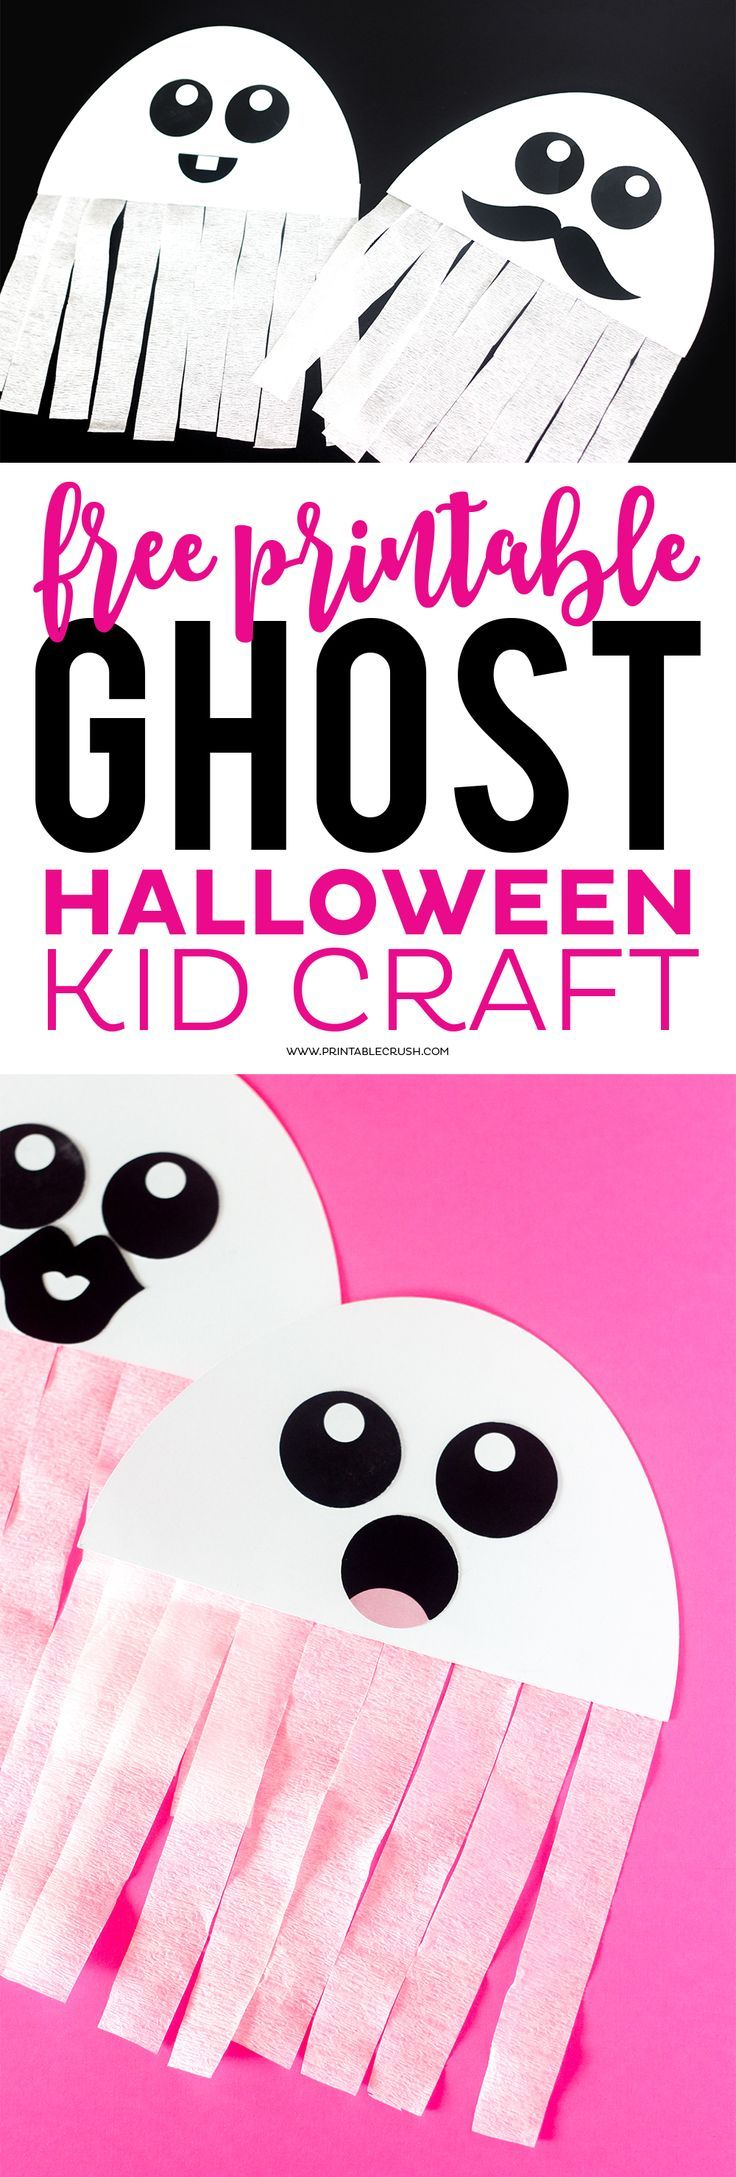 image about Halloween Crafts for Kids+free Printable identified as This Absolutely free Printable Ghost Halloween Craft would be a Wonderful